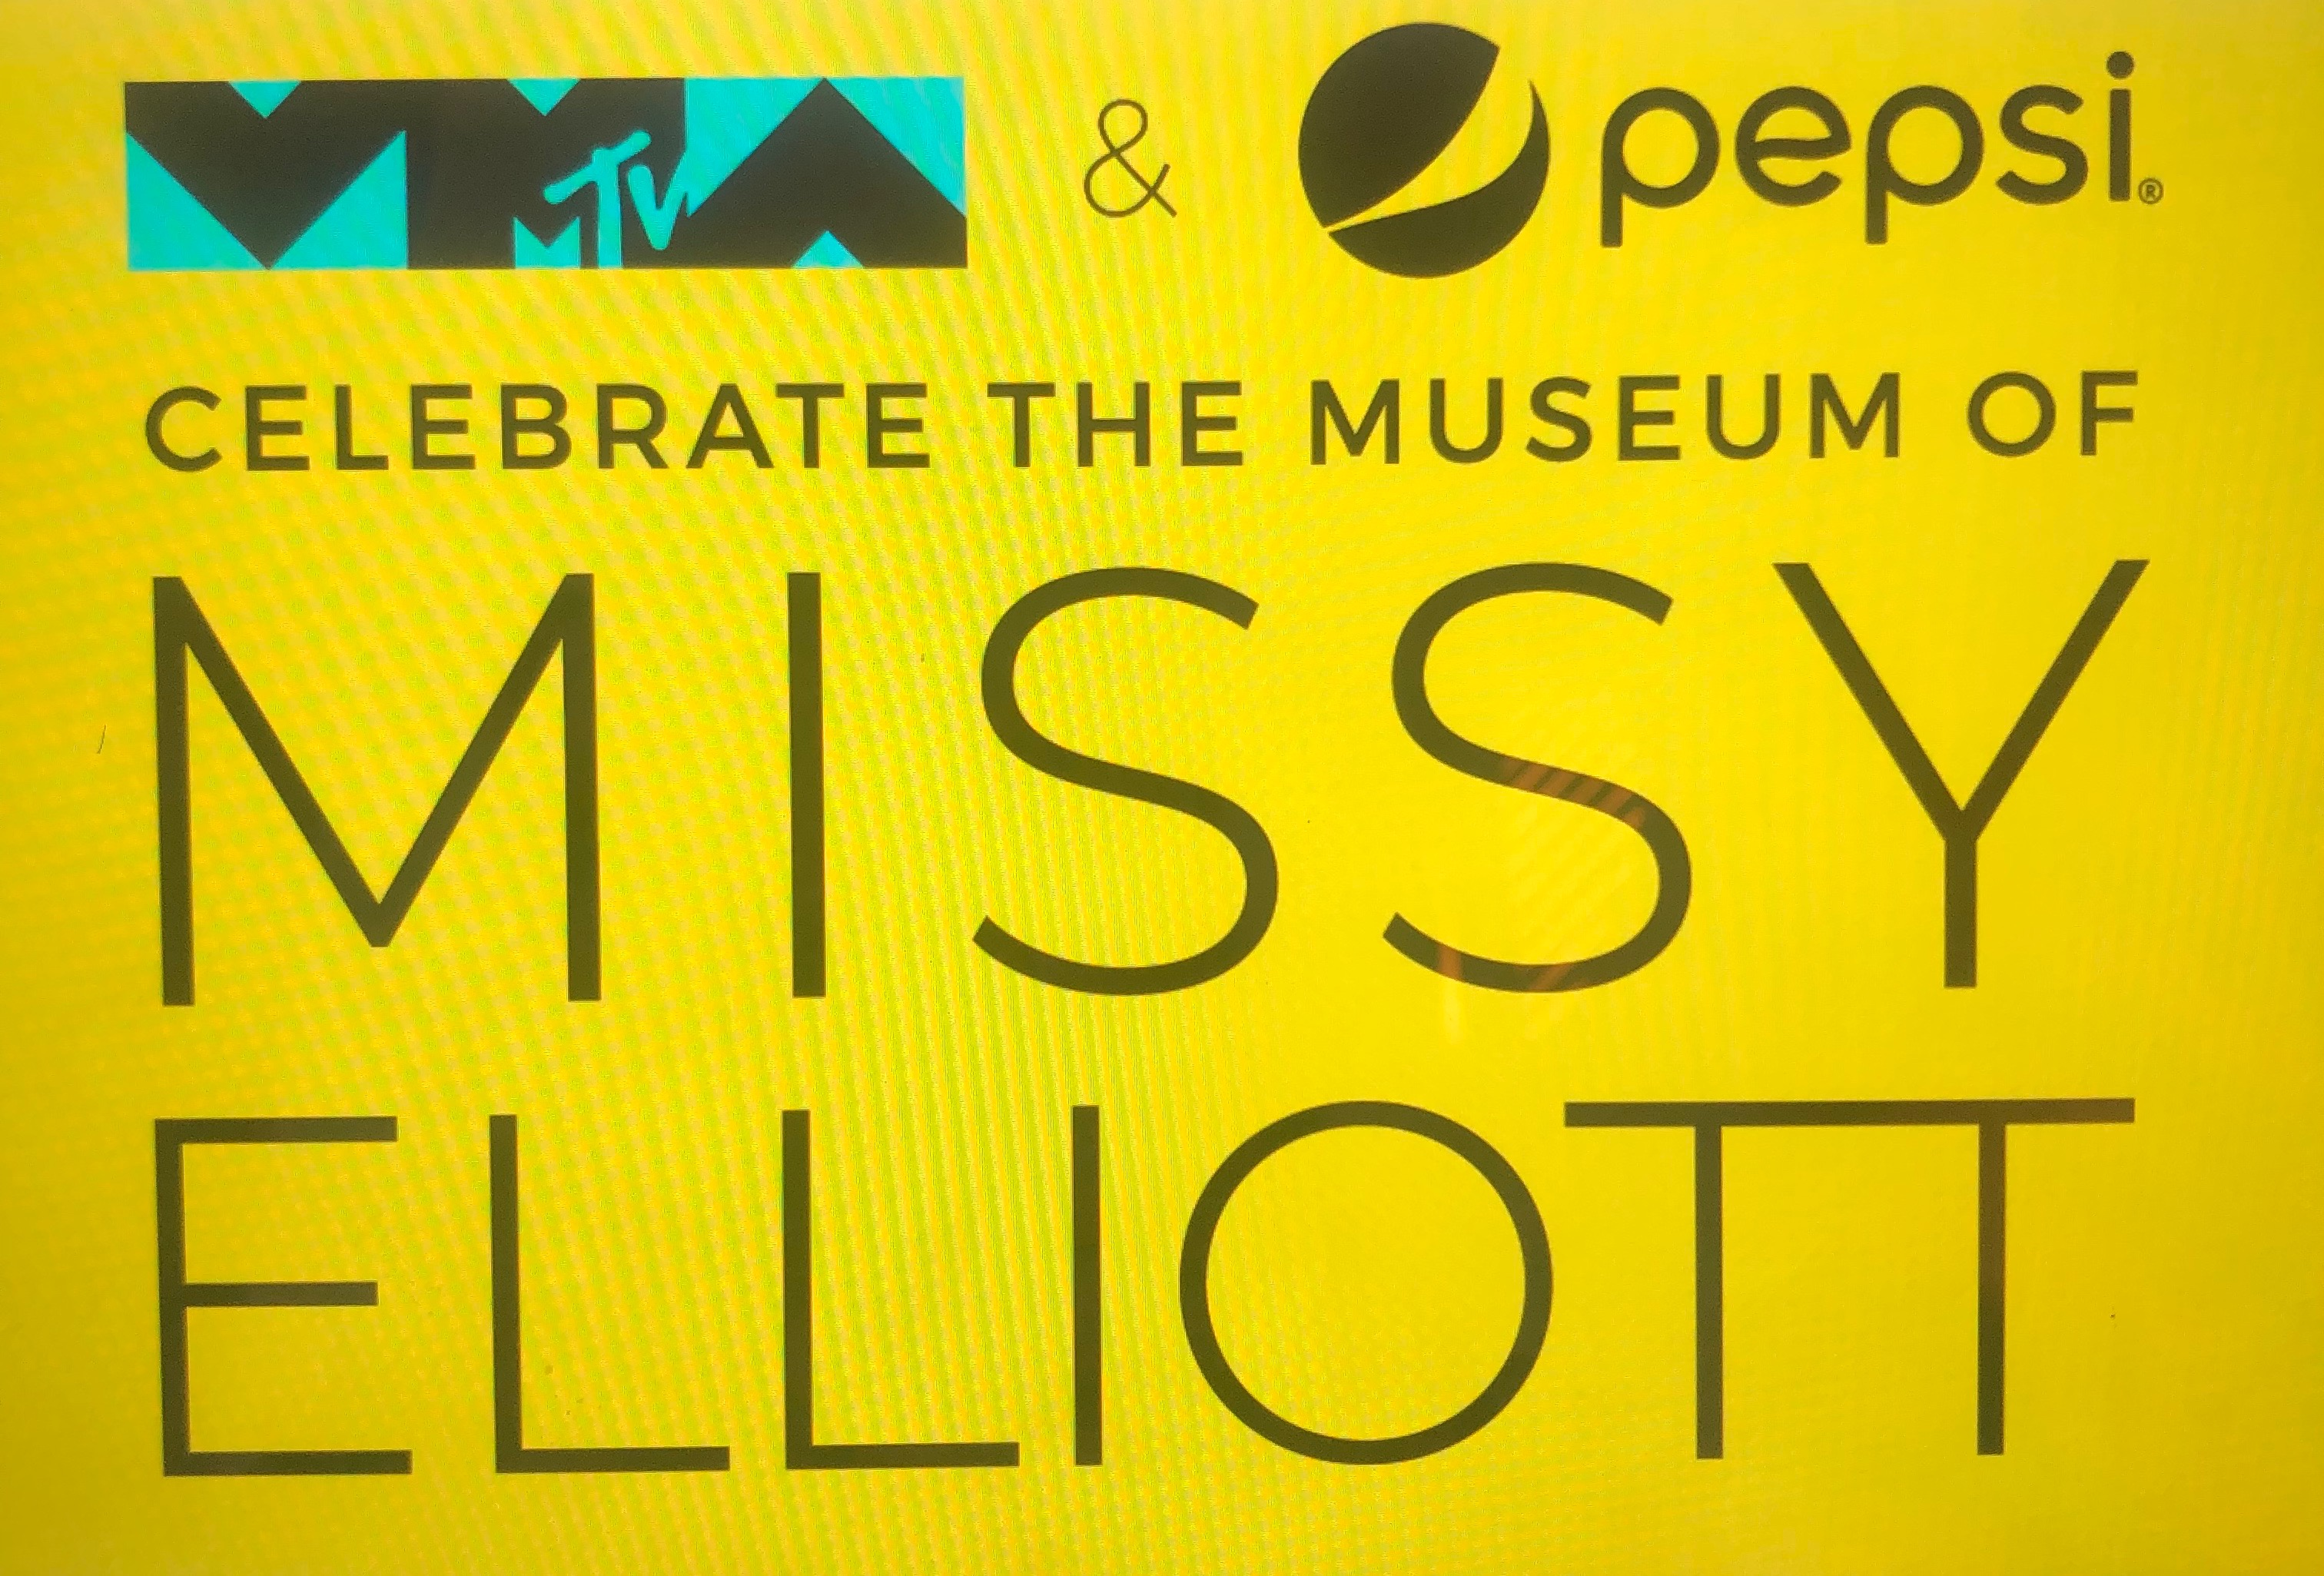 here comes Missy Elliott pop up museum